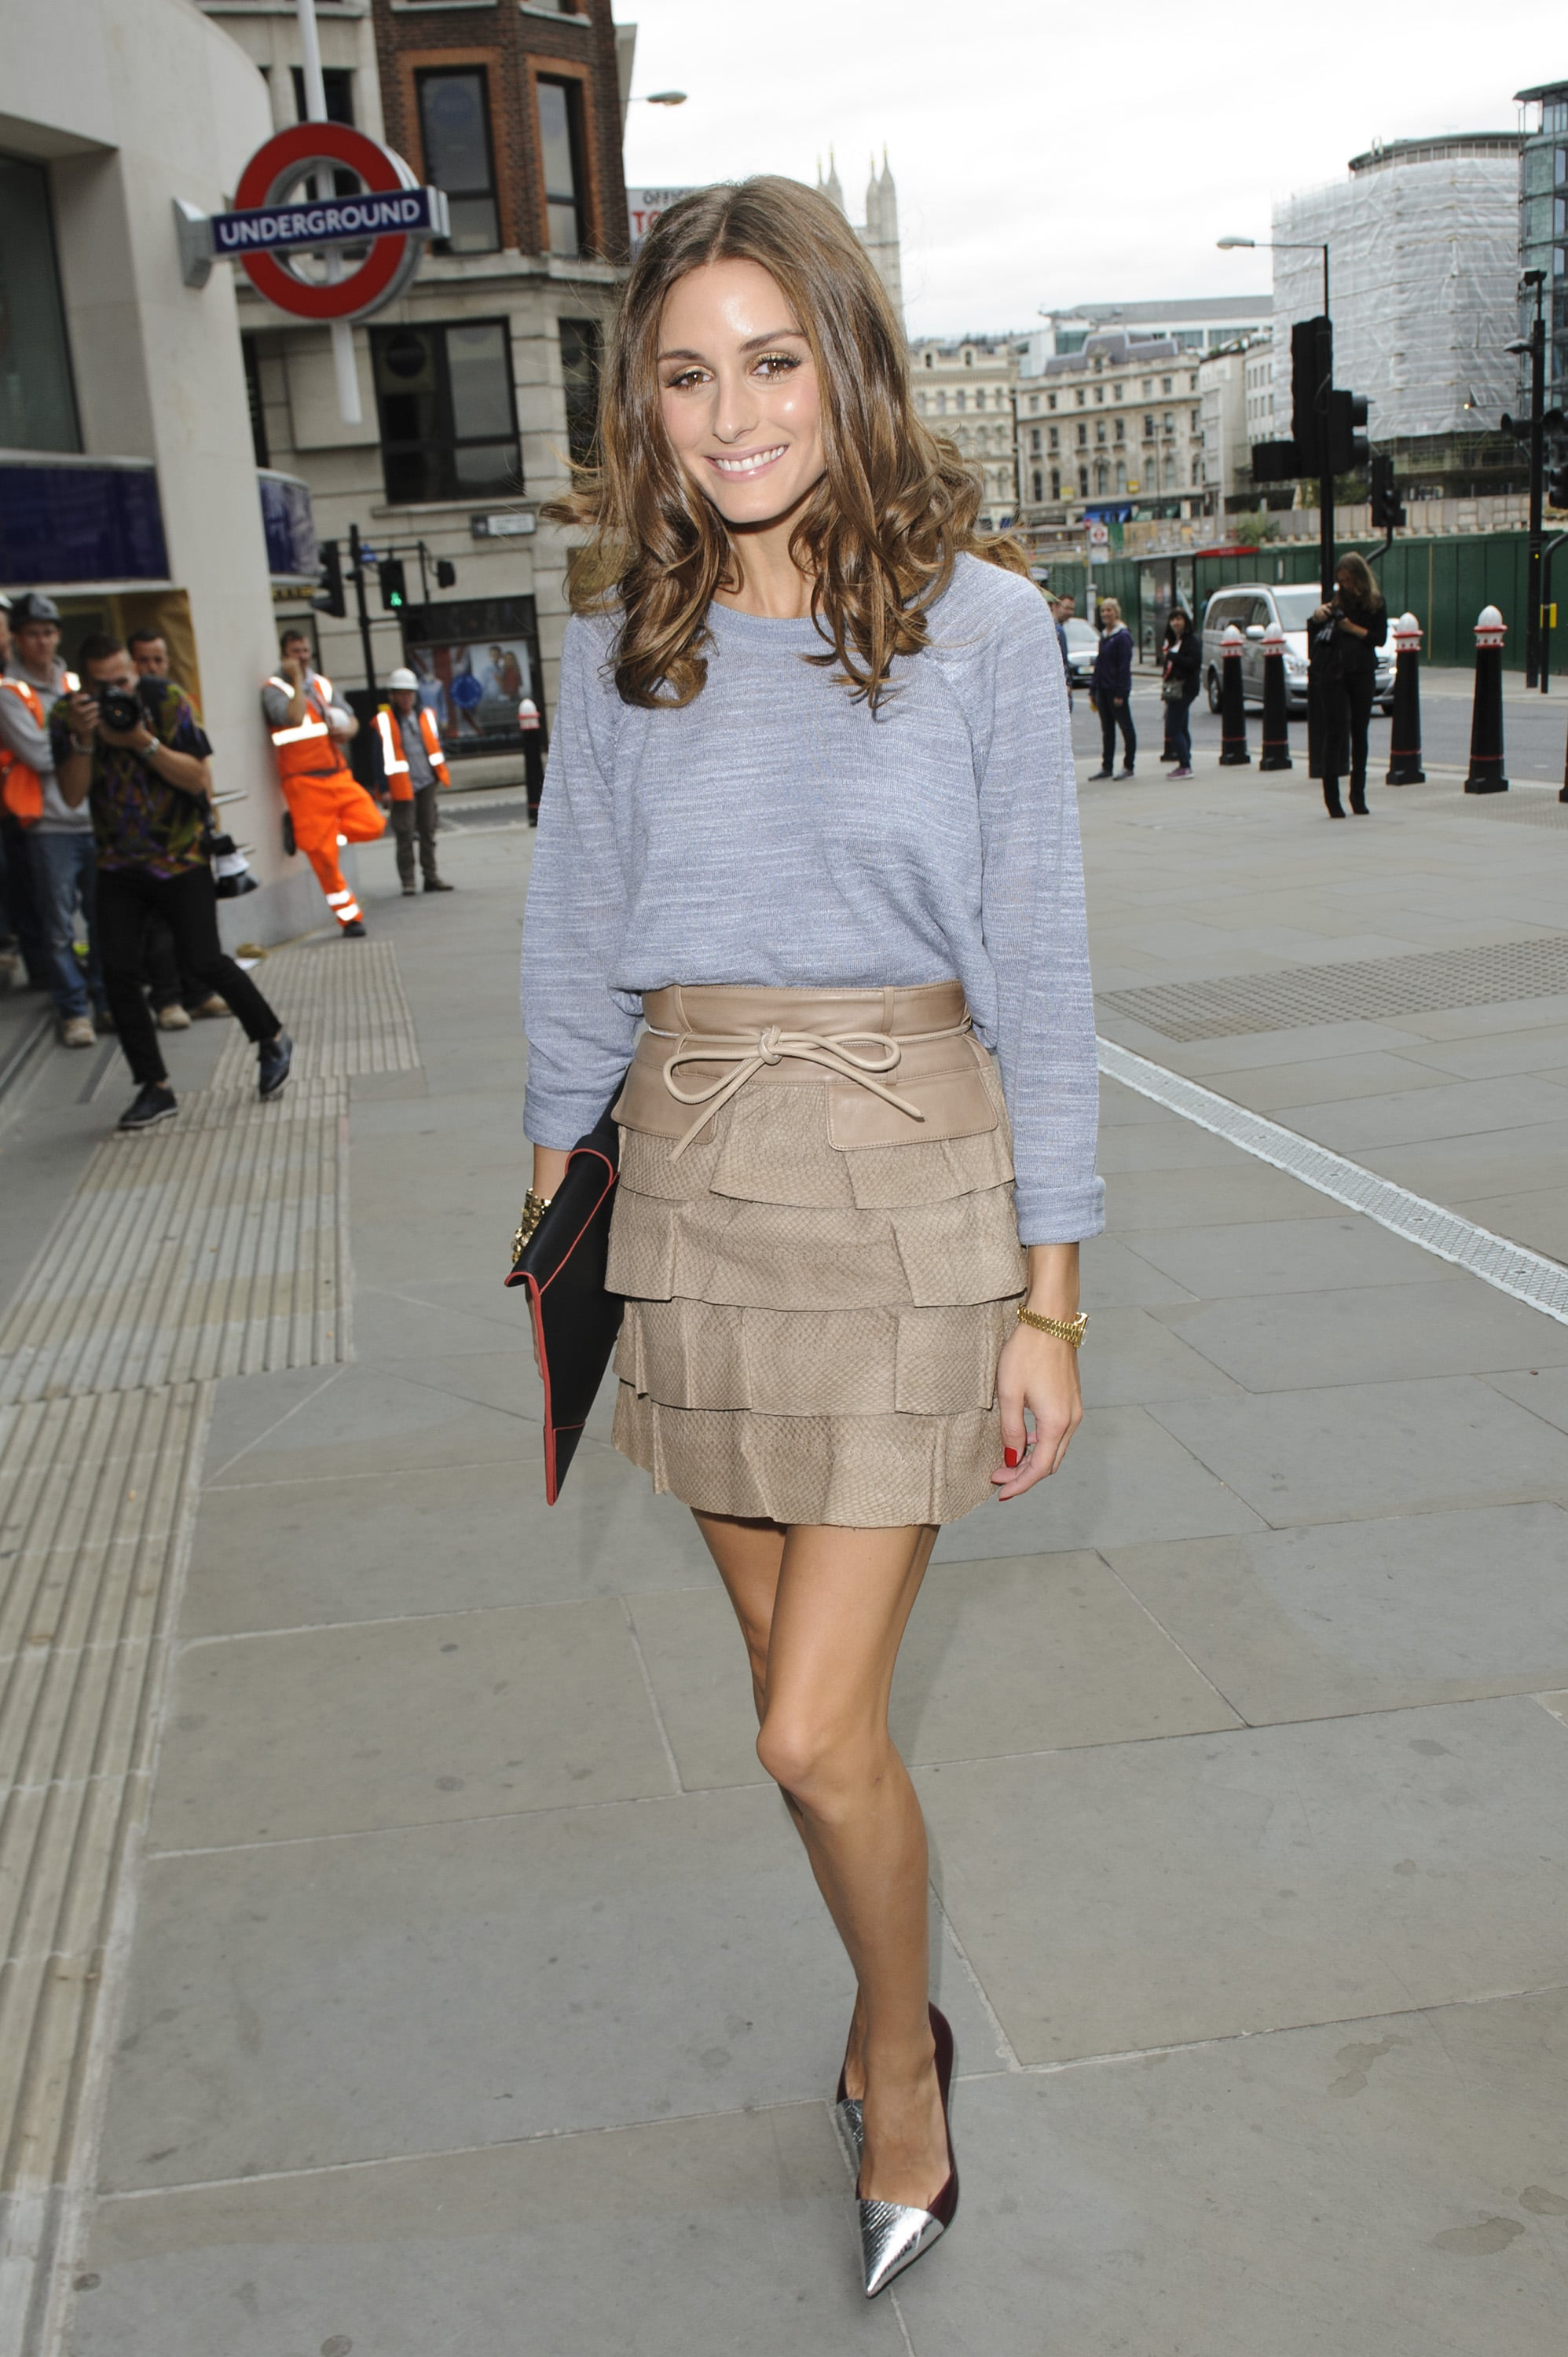 Olivia Palermo gave a Reiss basic knit a fashion-forward twist with a tiered Matthew Williamson miniskirt and a pair of metallic cap-toe pumps by Elizabeth and James at the Matthew Williamson show in London.